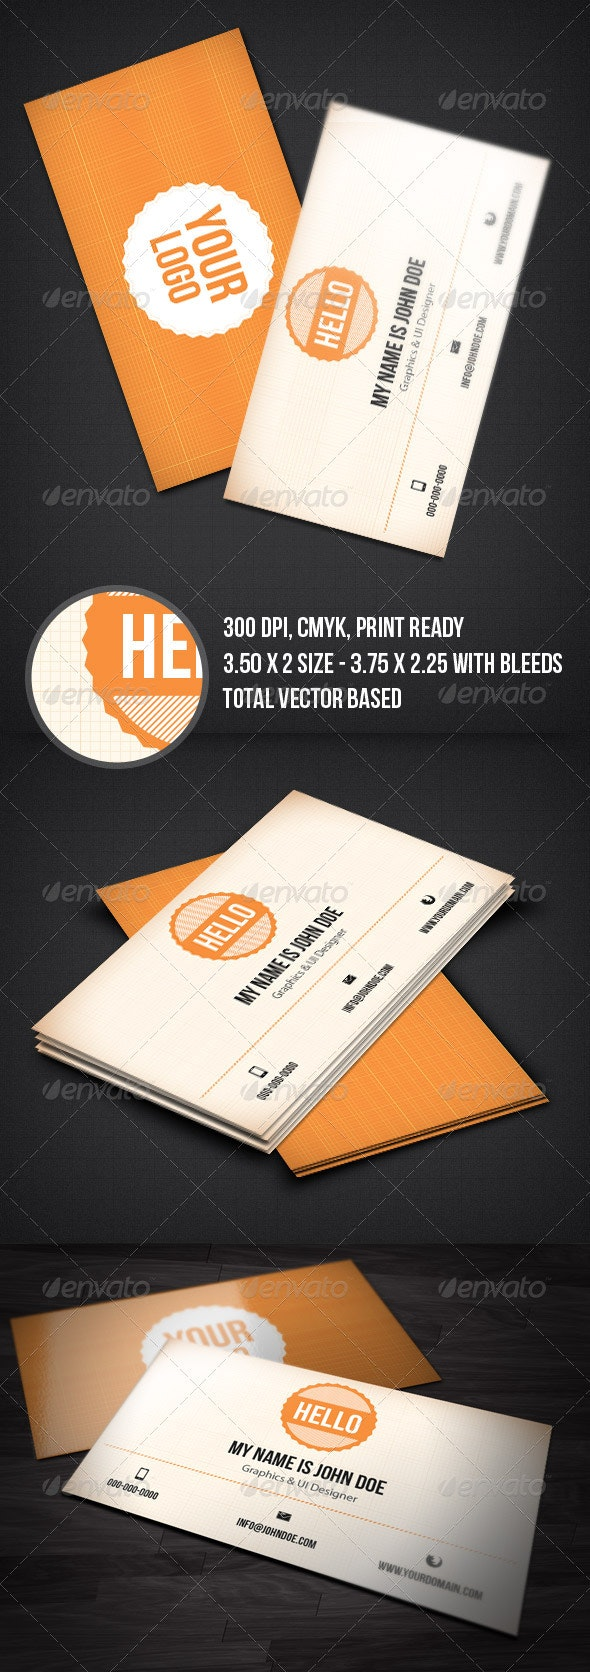 Minimal & Clean Business Card - Creative Business Cards